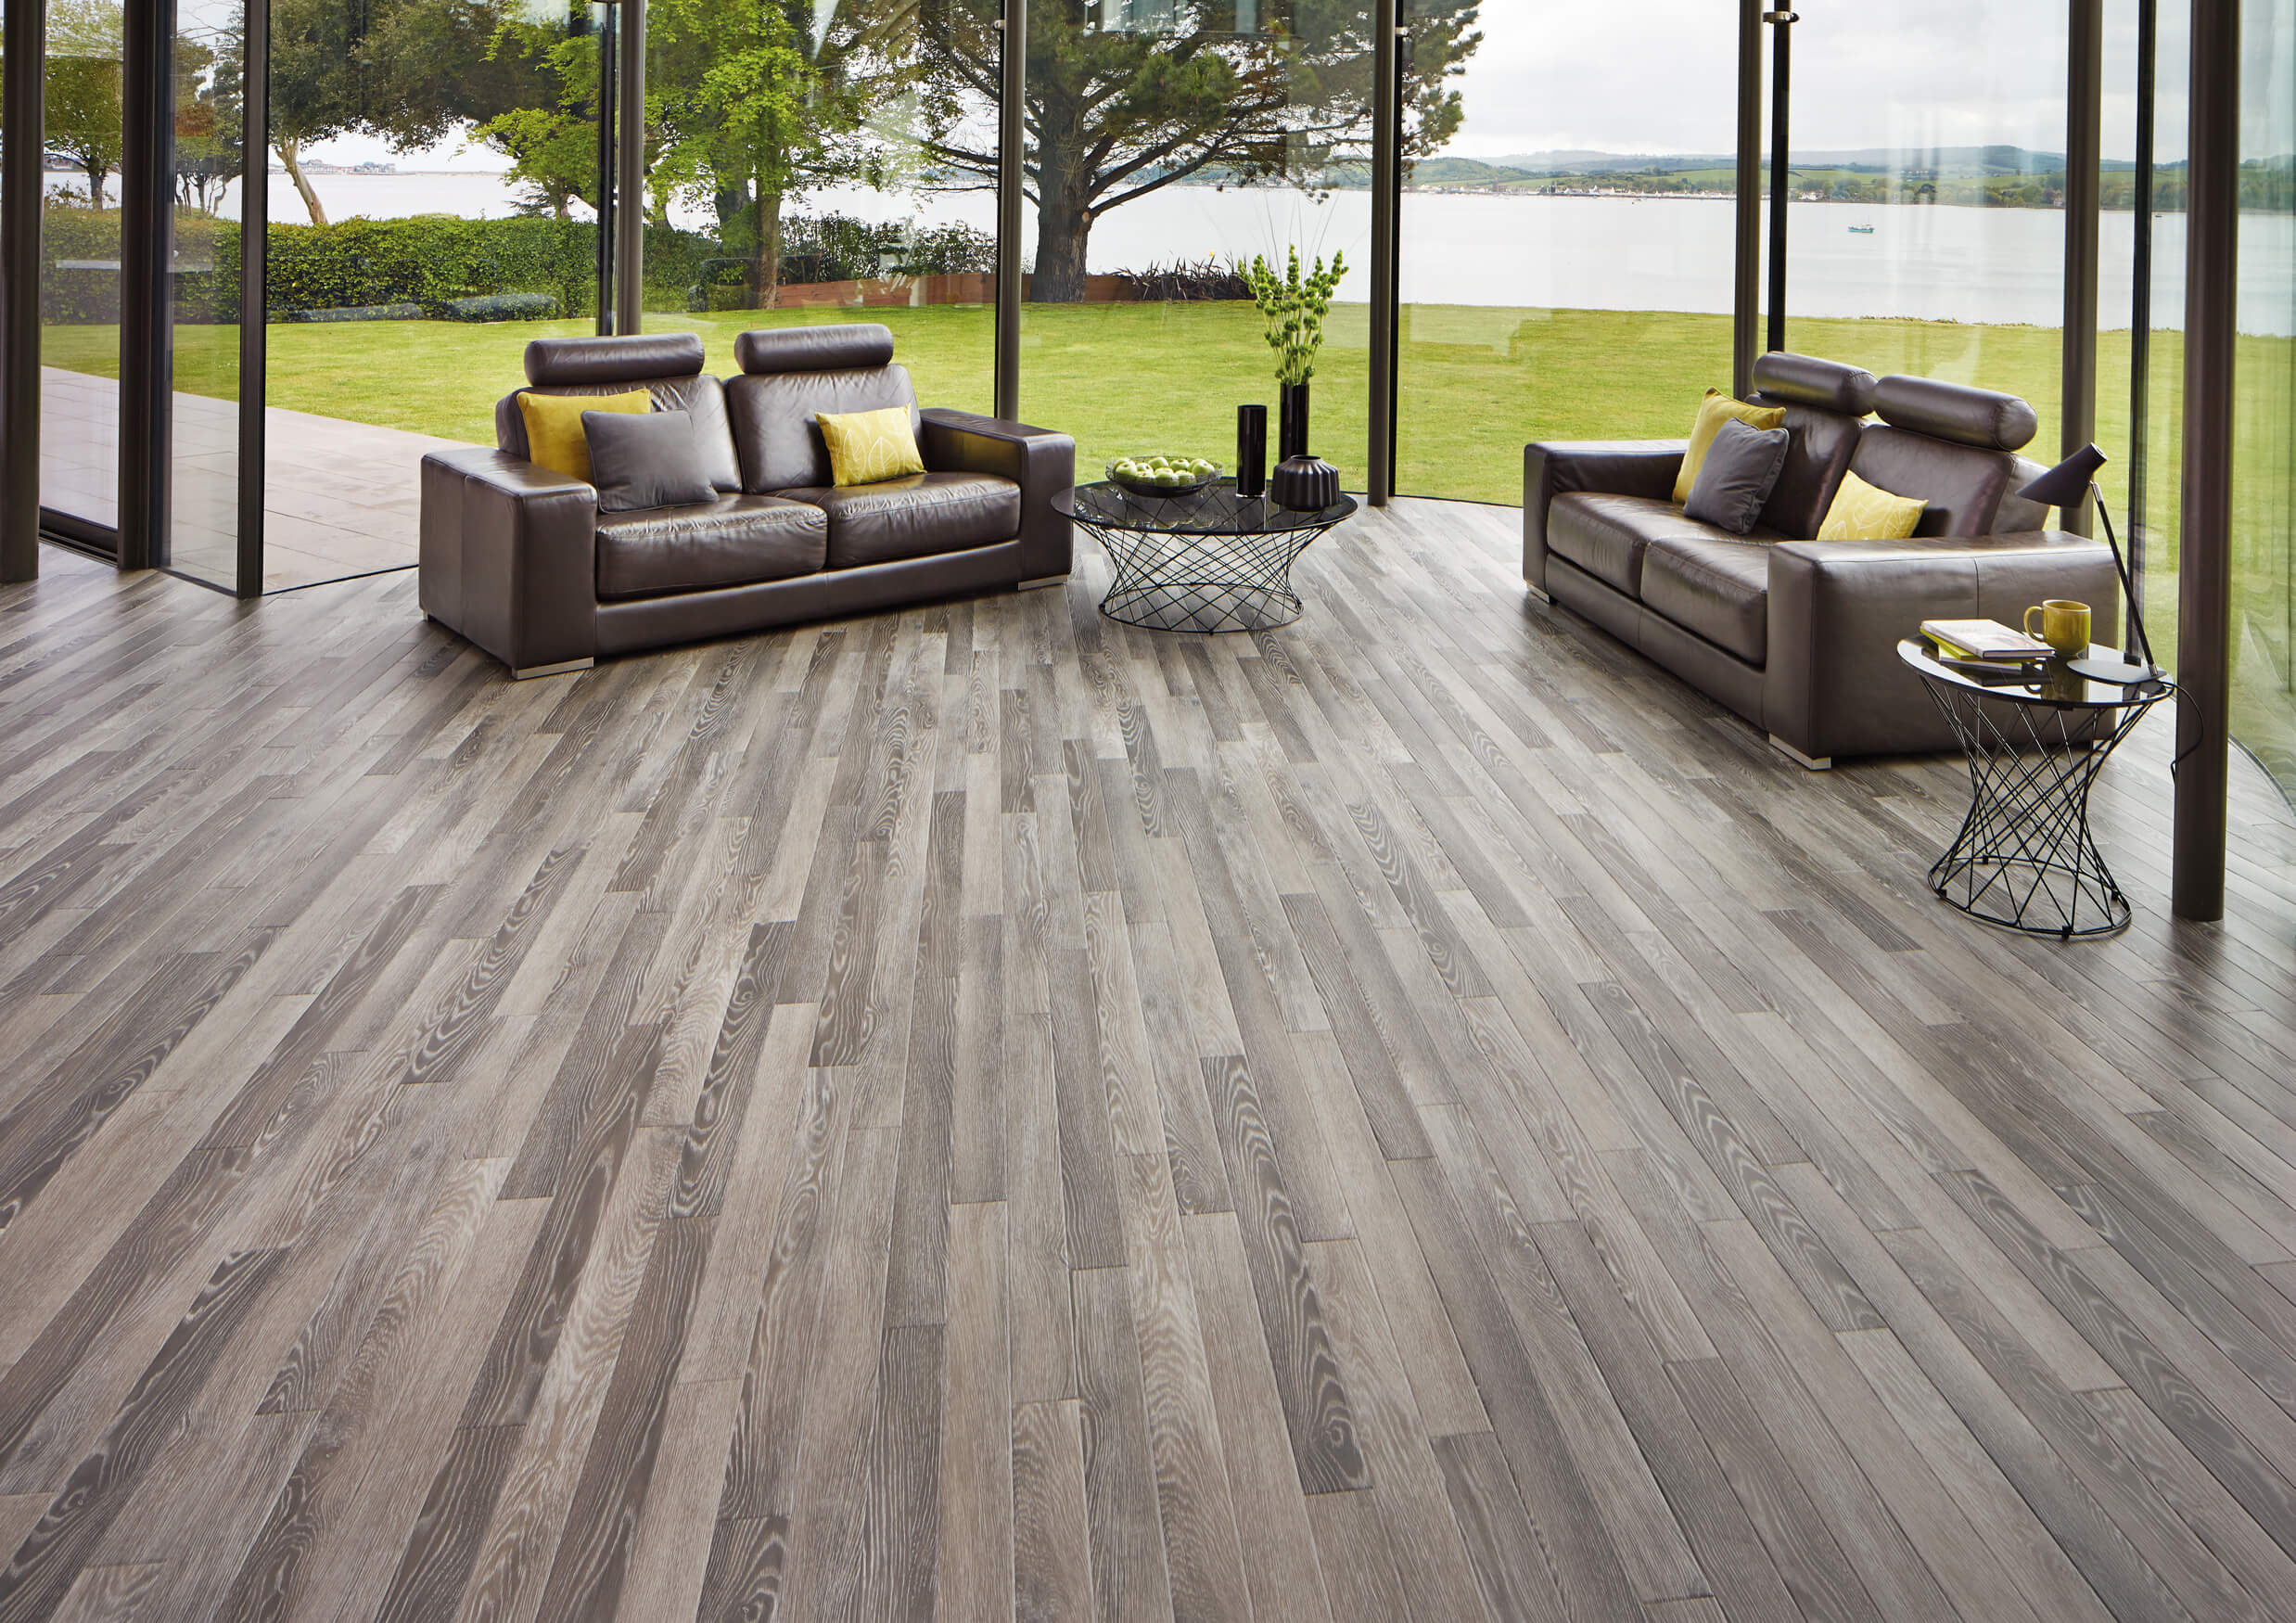 Karndean Are Specialist Providers In Luxury Flooring They Offer Both Tiles And Planks Completely Disprove The Idea That You Cant Get Style